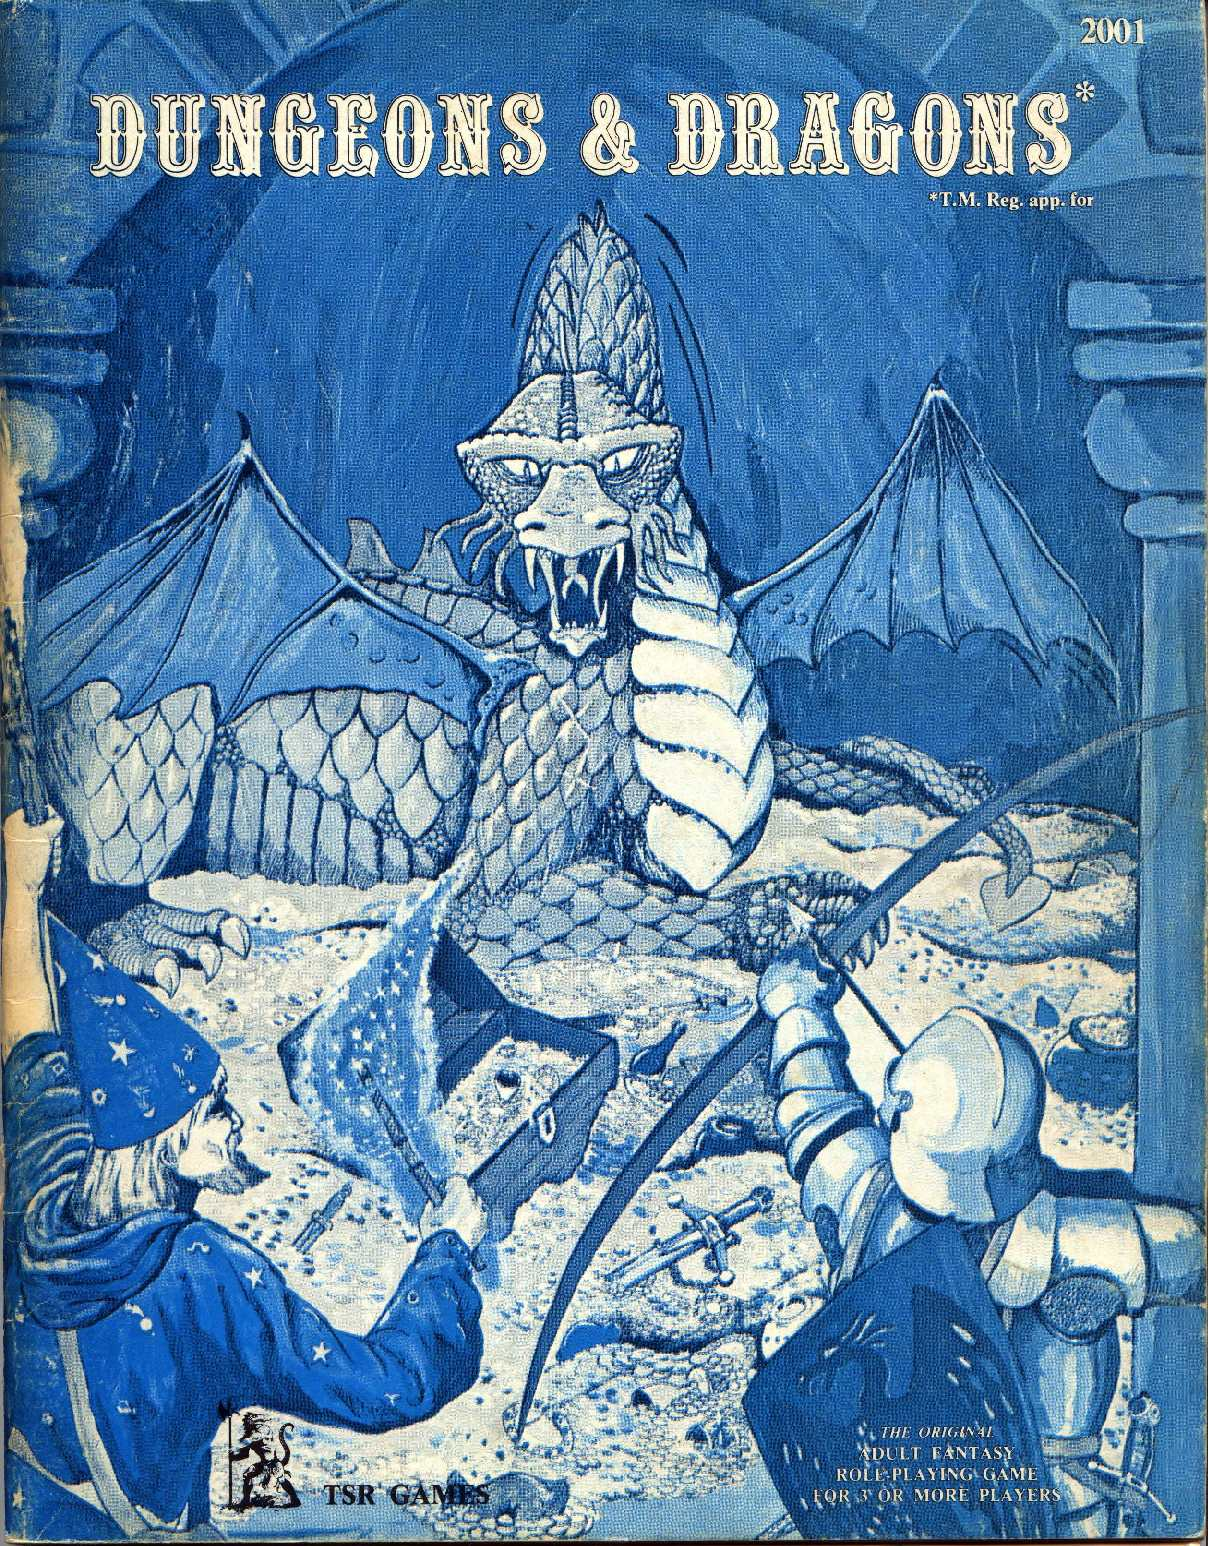 Dungeons and Dragons - Basic Rulebook (first edition by Gary Gigax)